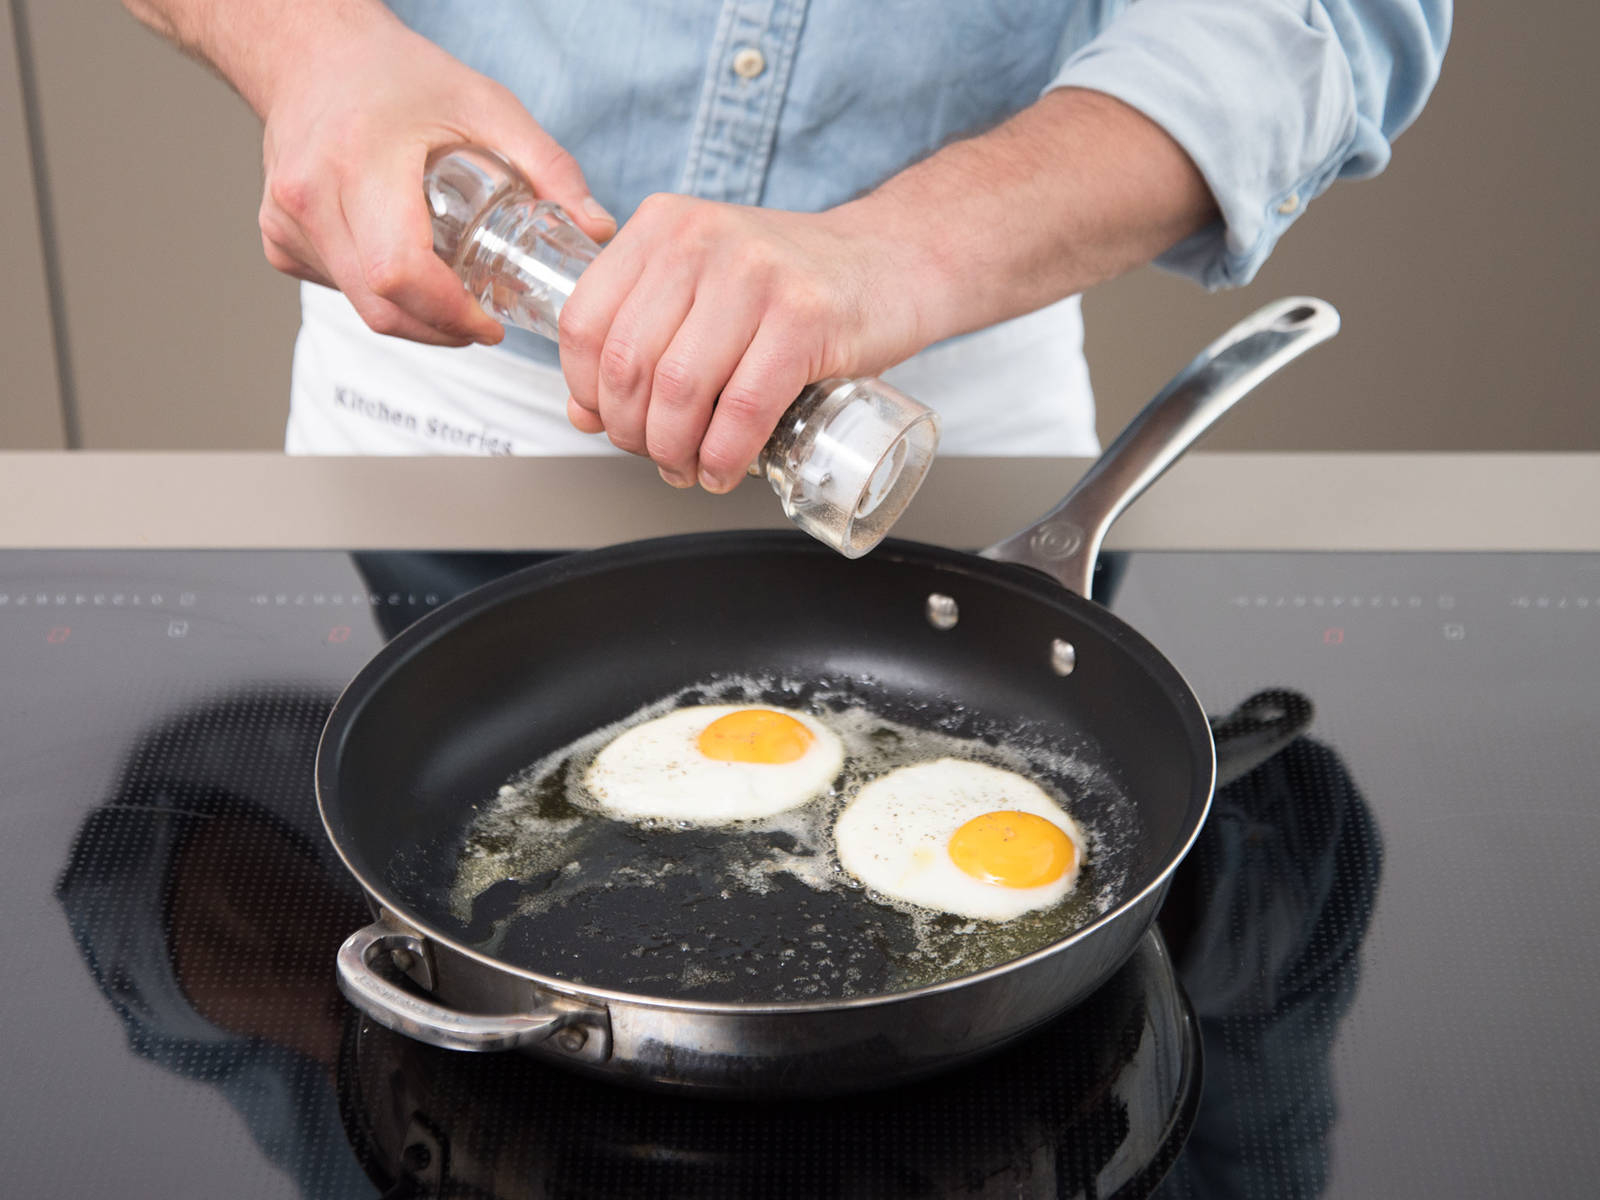 Crack eggs and gently drop into the same pan. Cook over medium heat for approx. 3 – 4 min., or until desired doneness, and season with salt and pepper. Serve fried egg on top of meatloaf and alongside potato salad and extra mustard. Enjoy!